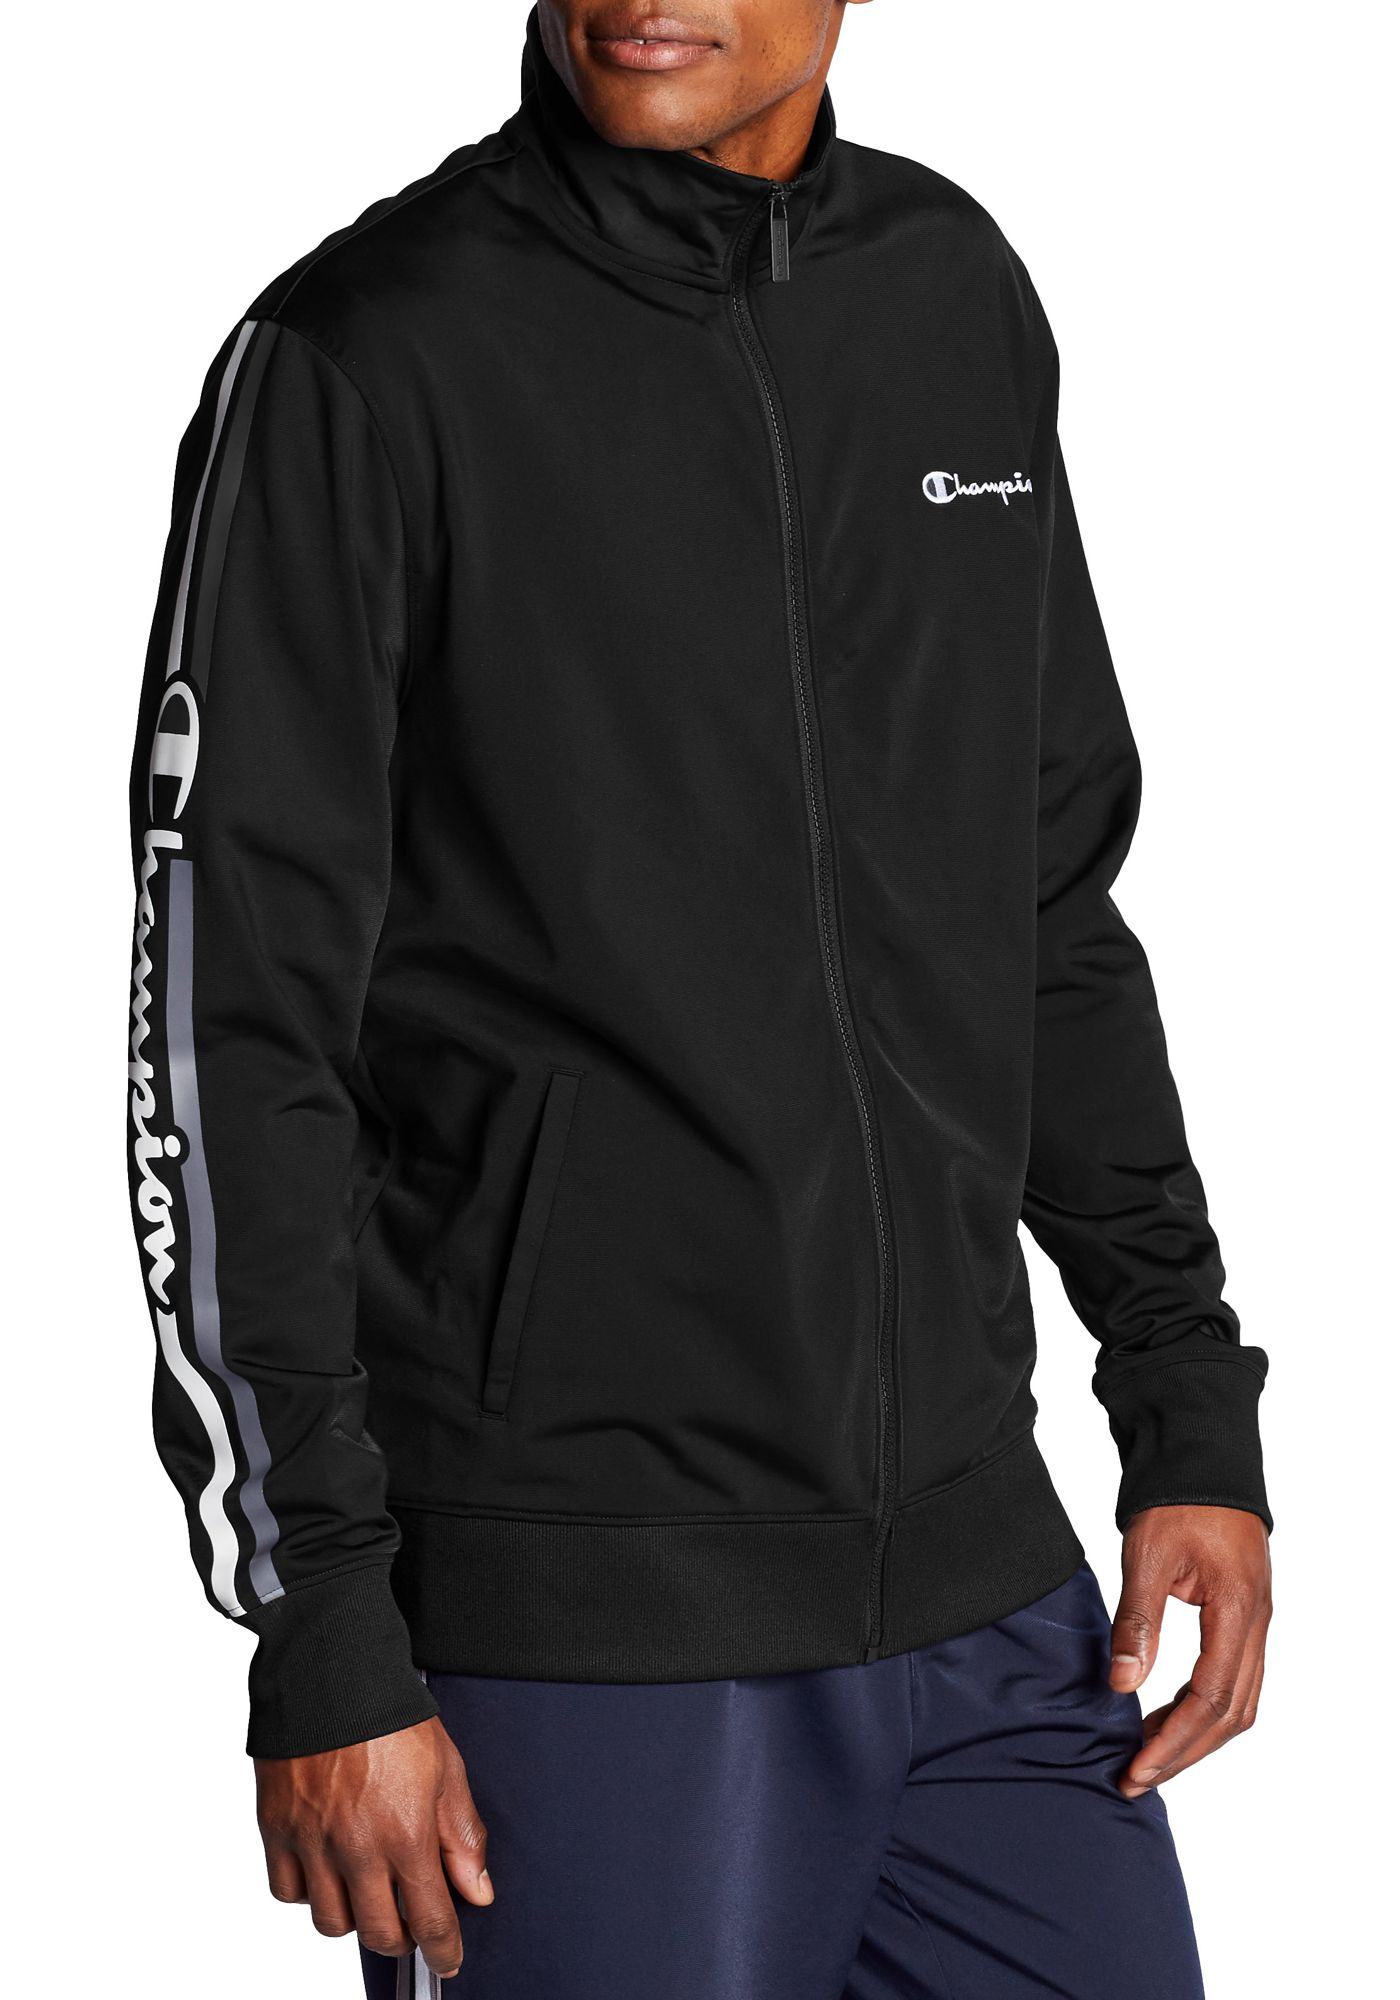 Champion Men's Track Jacket